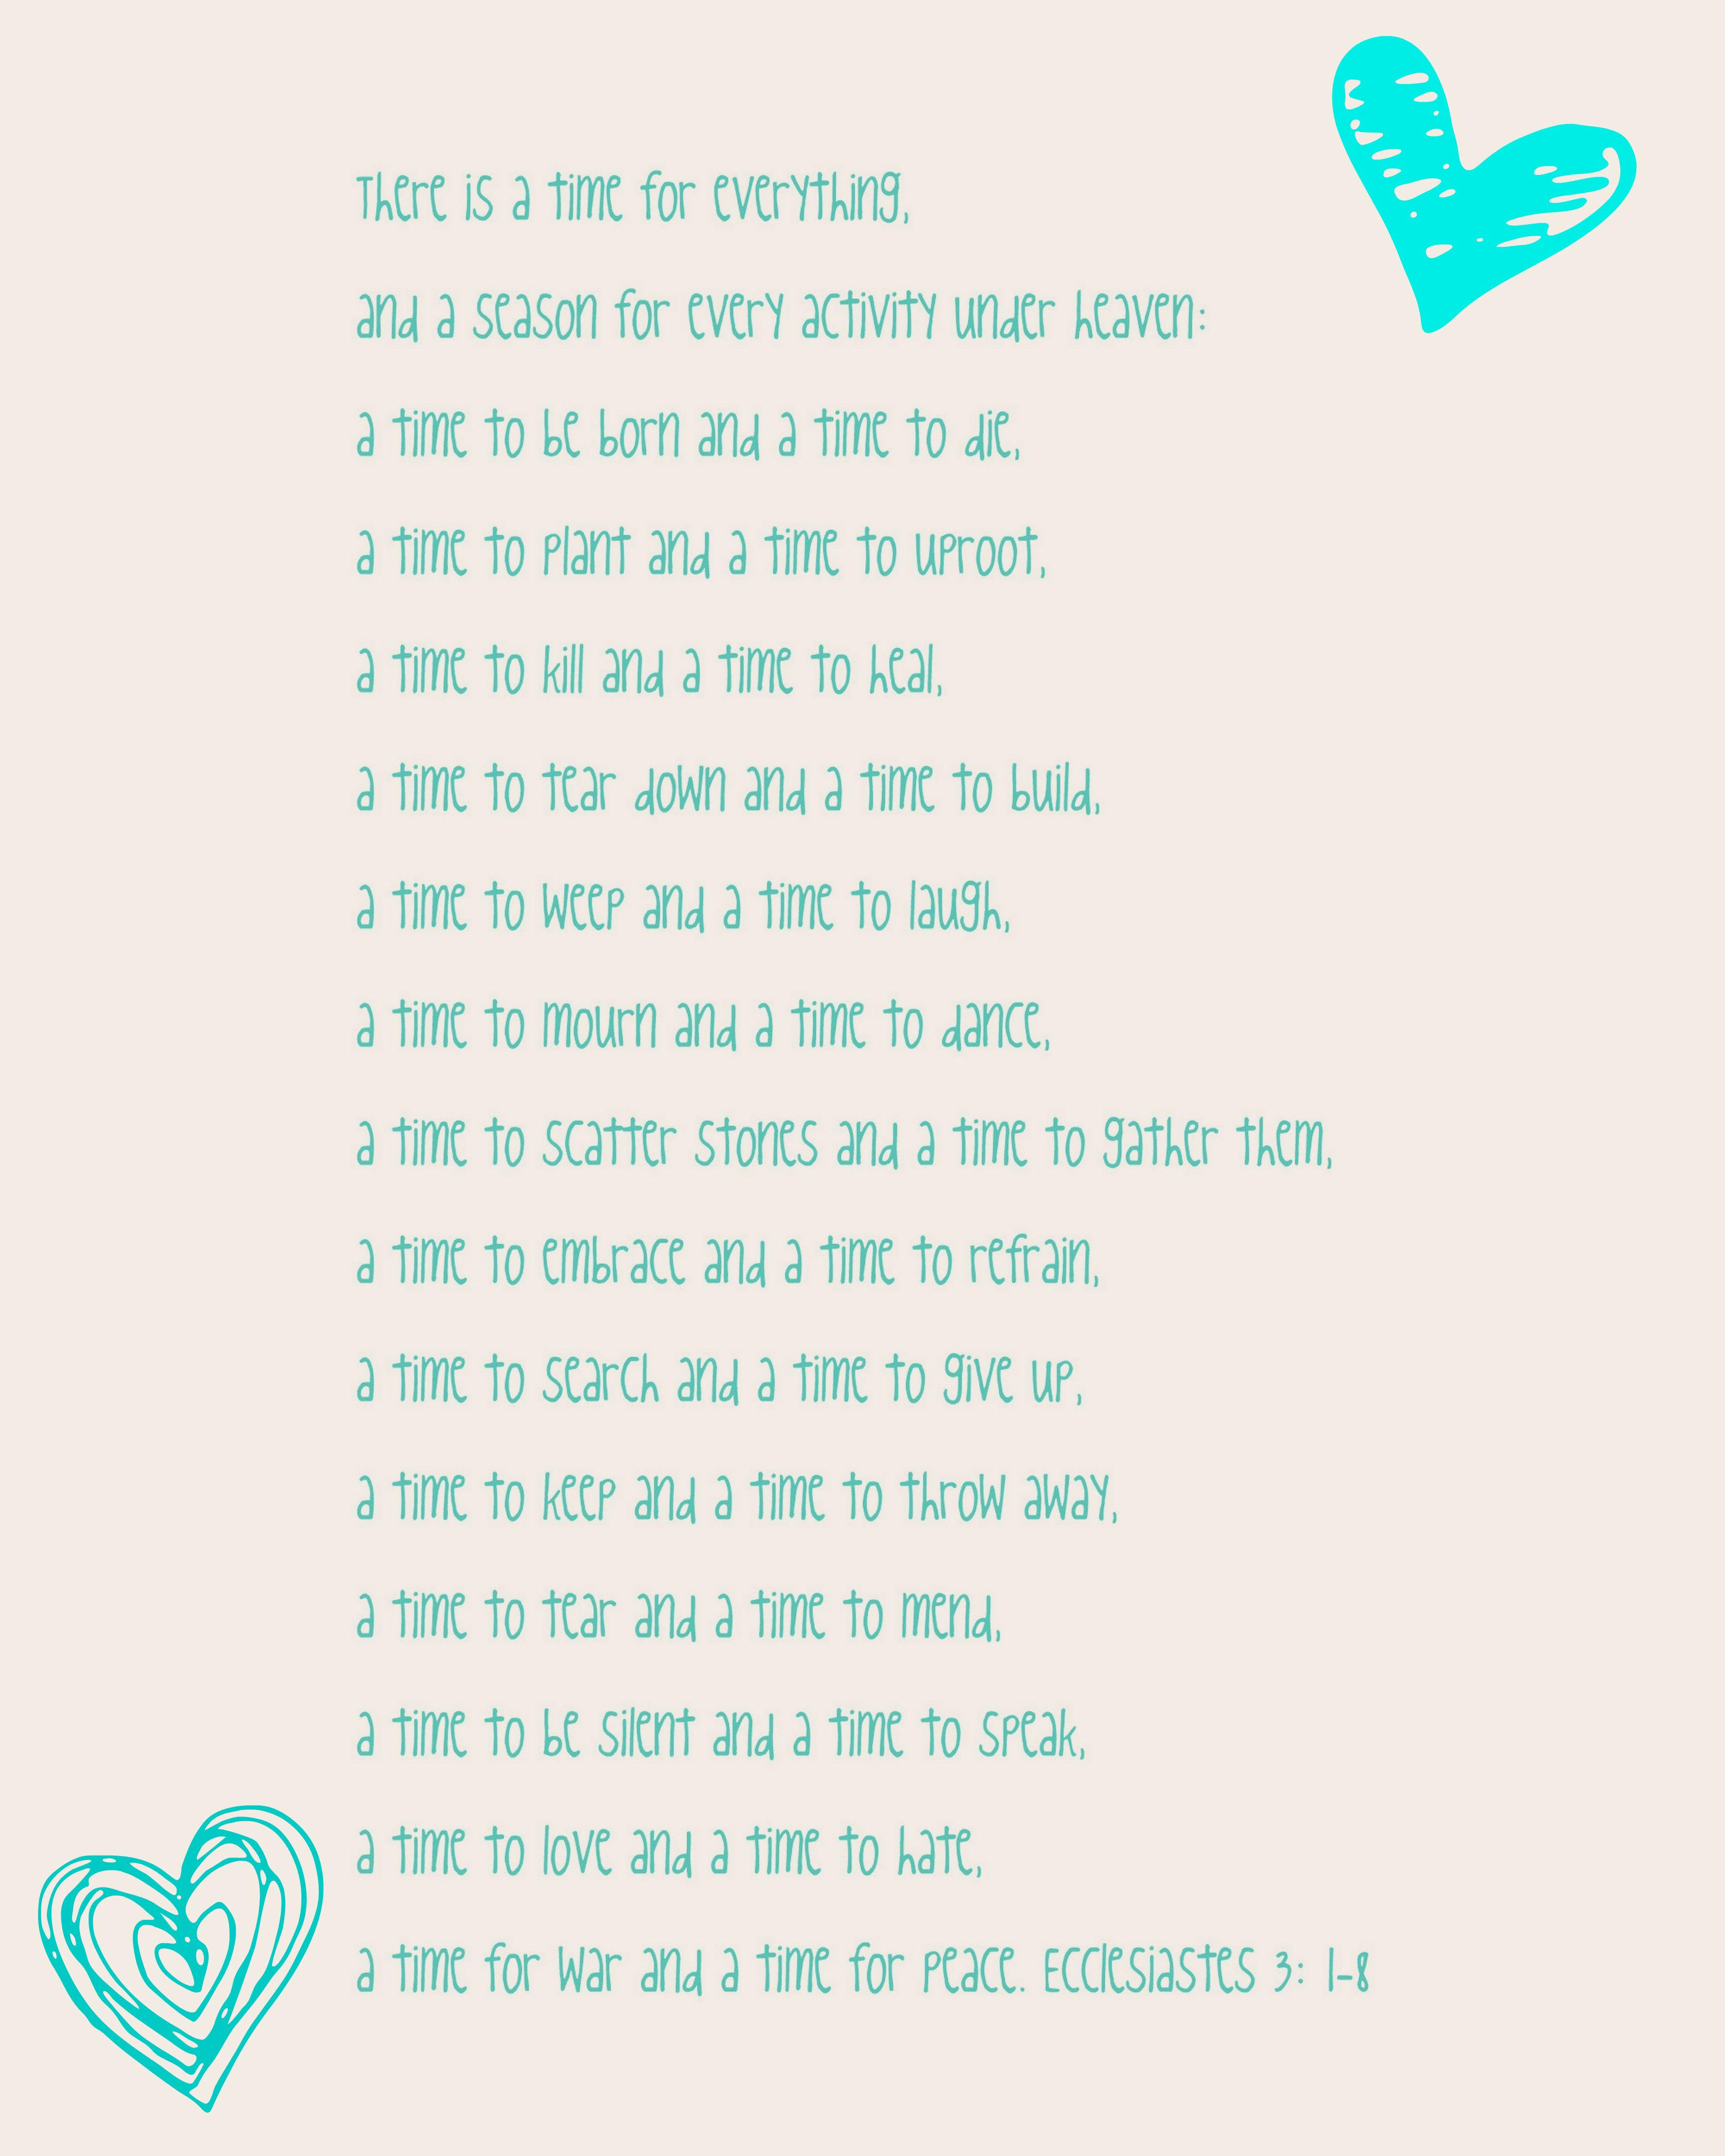 Free Printable Ecclesiastes 31 8 There Is A Time For Everything